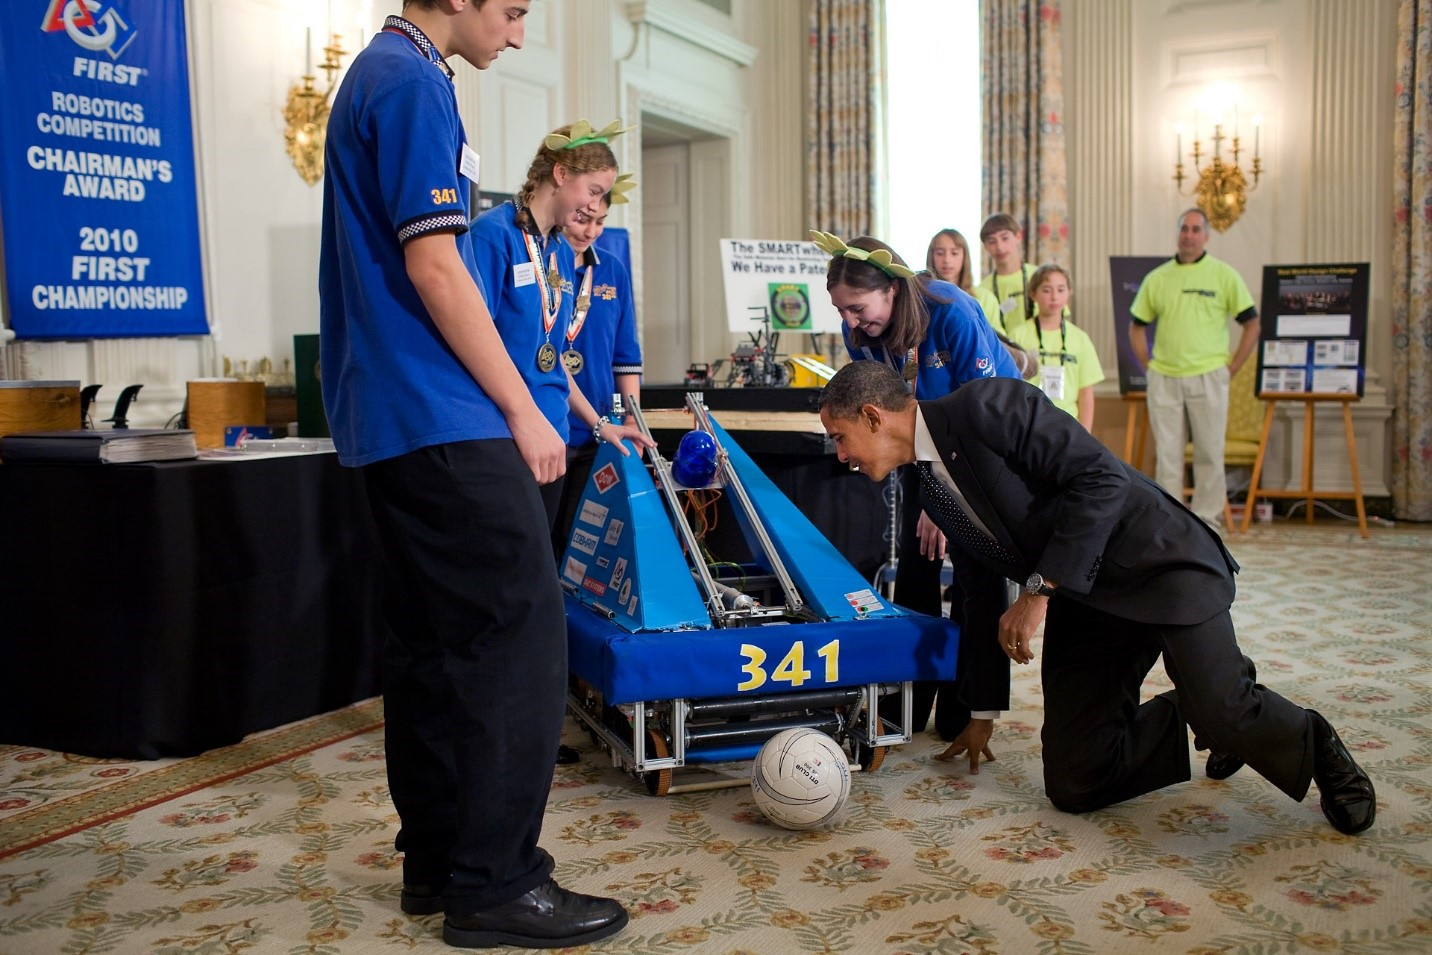 President Barack Obama gets down on his hands and knees as he looks at the inner workings of a robot that plays soccer, built by a team from Blue Bell, Pa., as he tours science projects on display in the State Dining Room of the White House. President Obama hosted the White House Science Fair for winners of a broad range of science, technology, engineering and math (STEM) competitions. October 18, 2010. (Official White House Photo by Pete Souza)